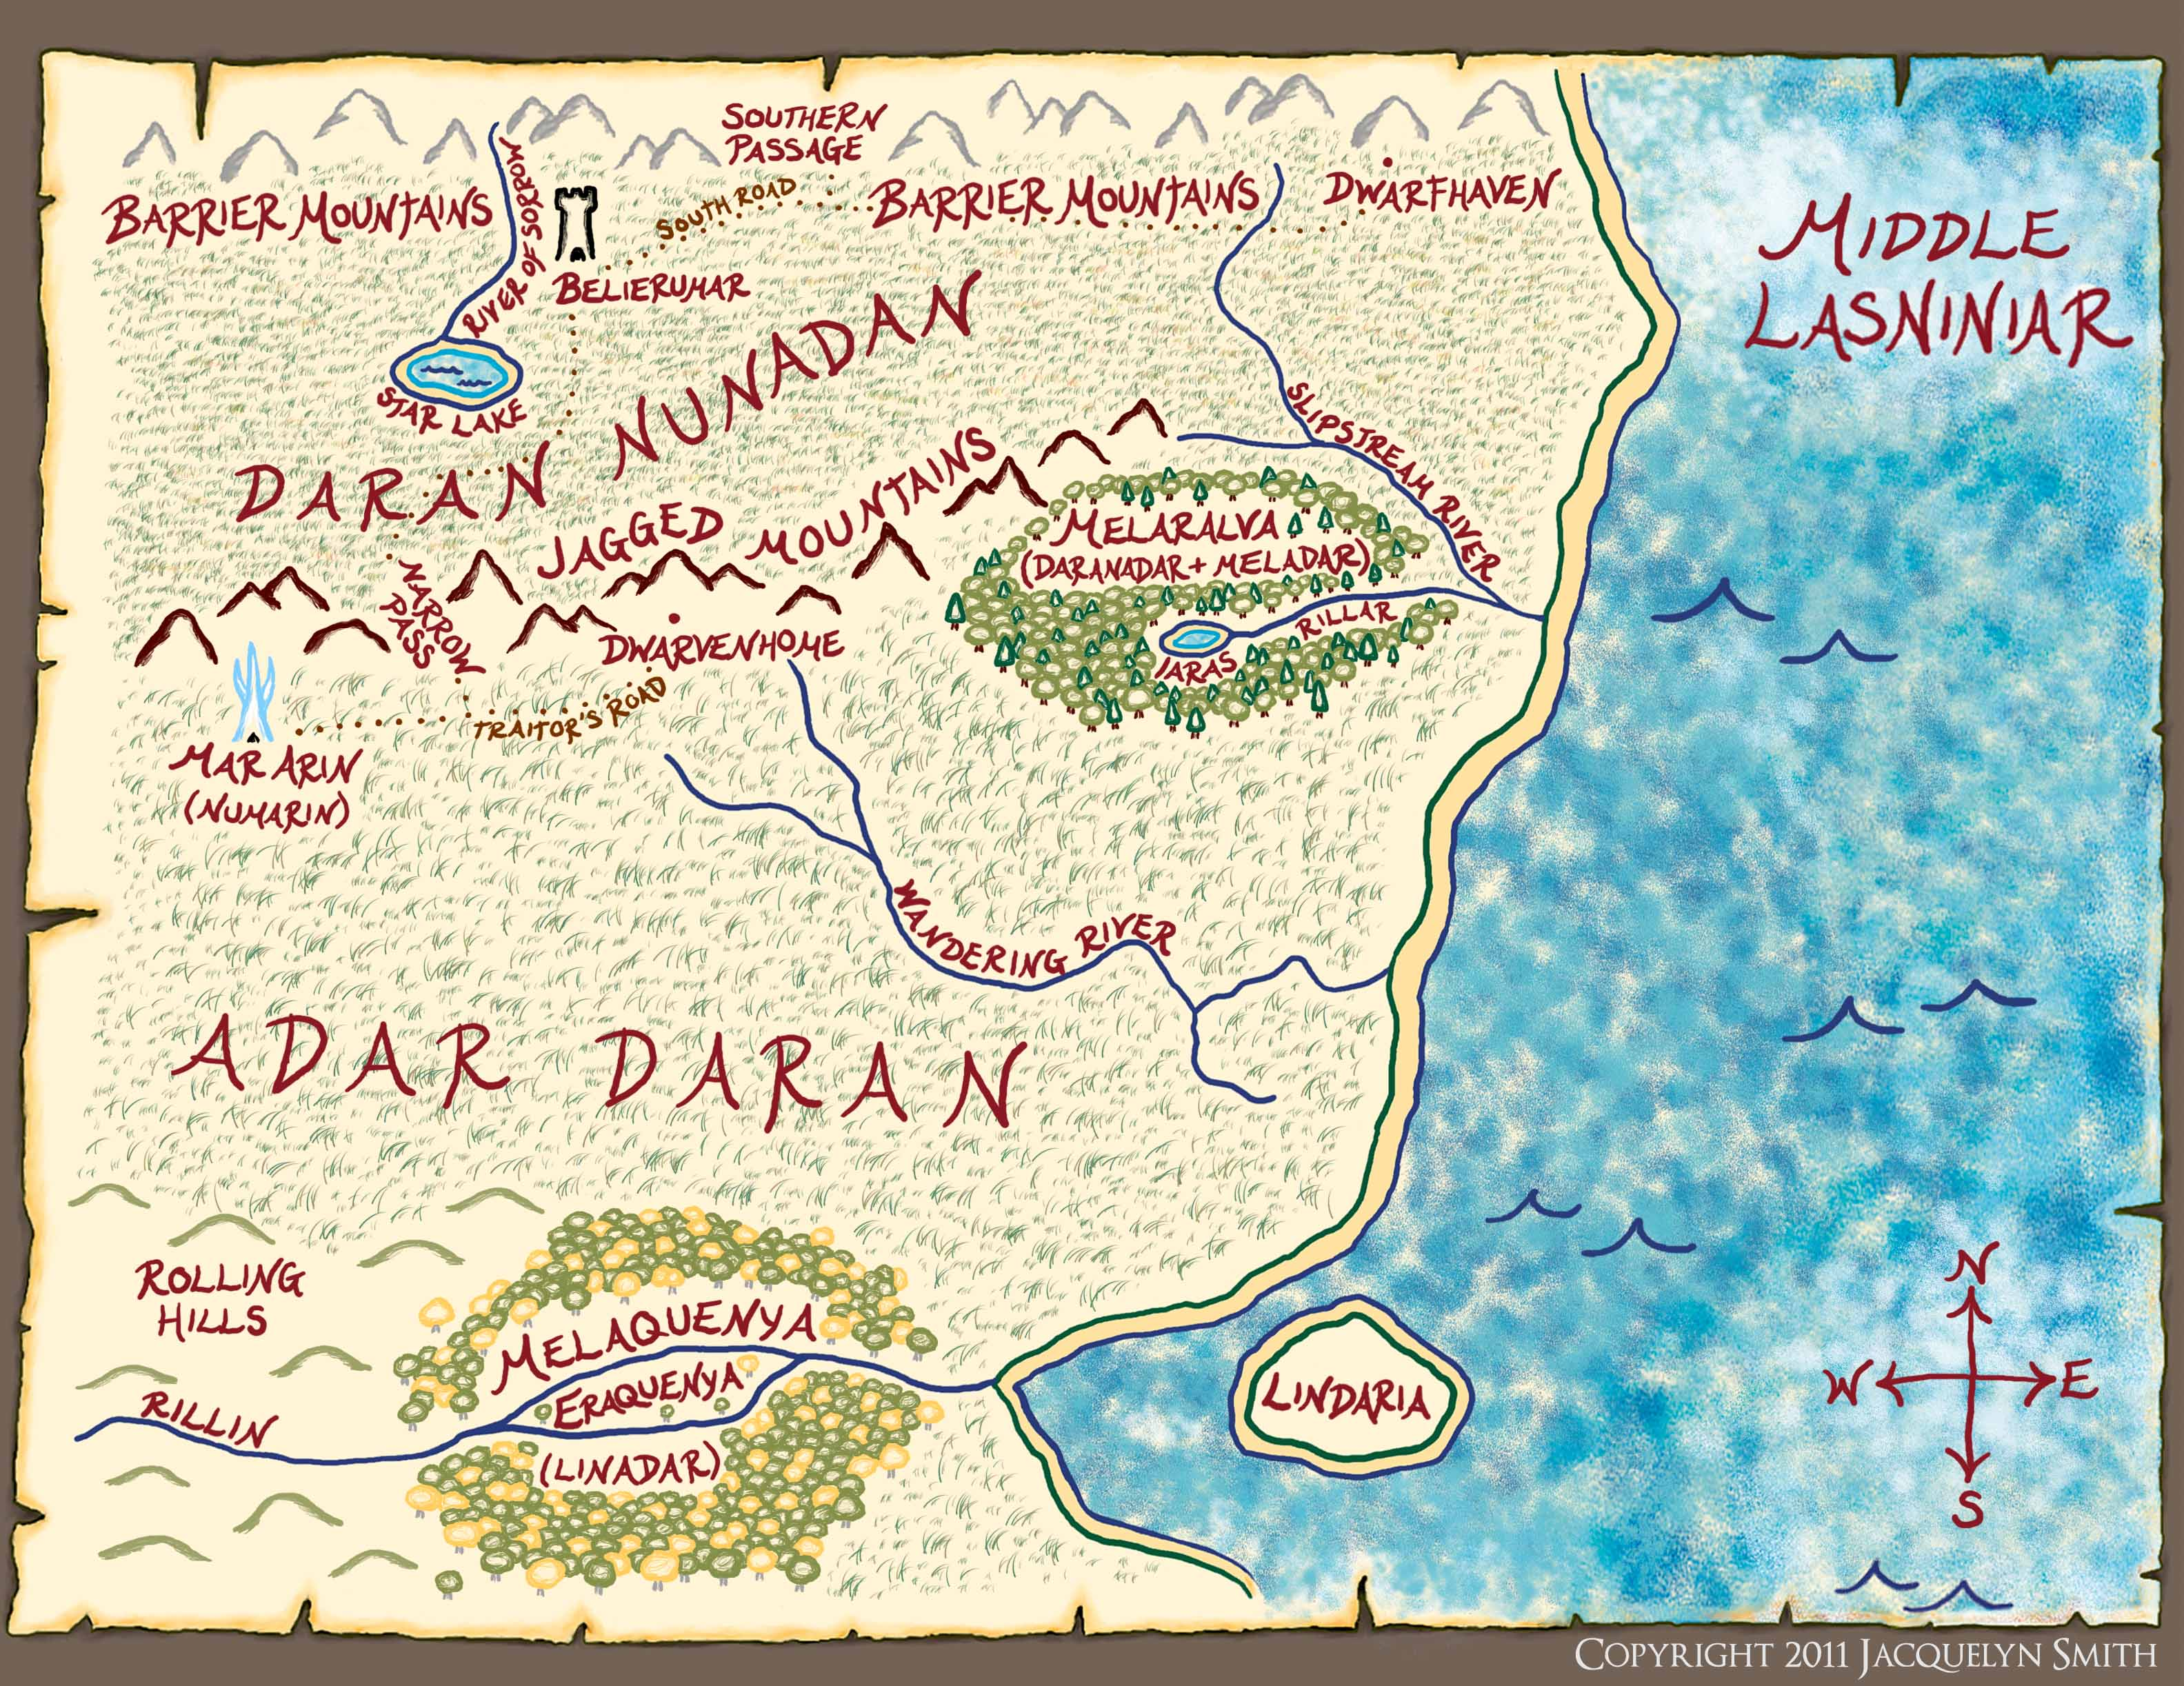 Middle Lasniniar map